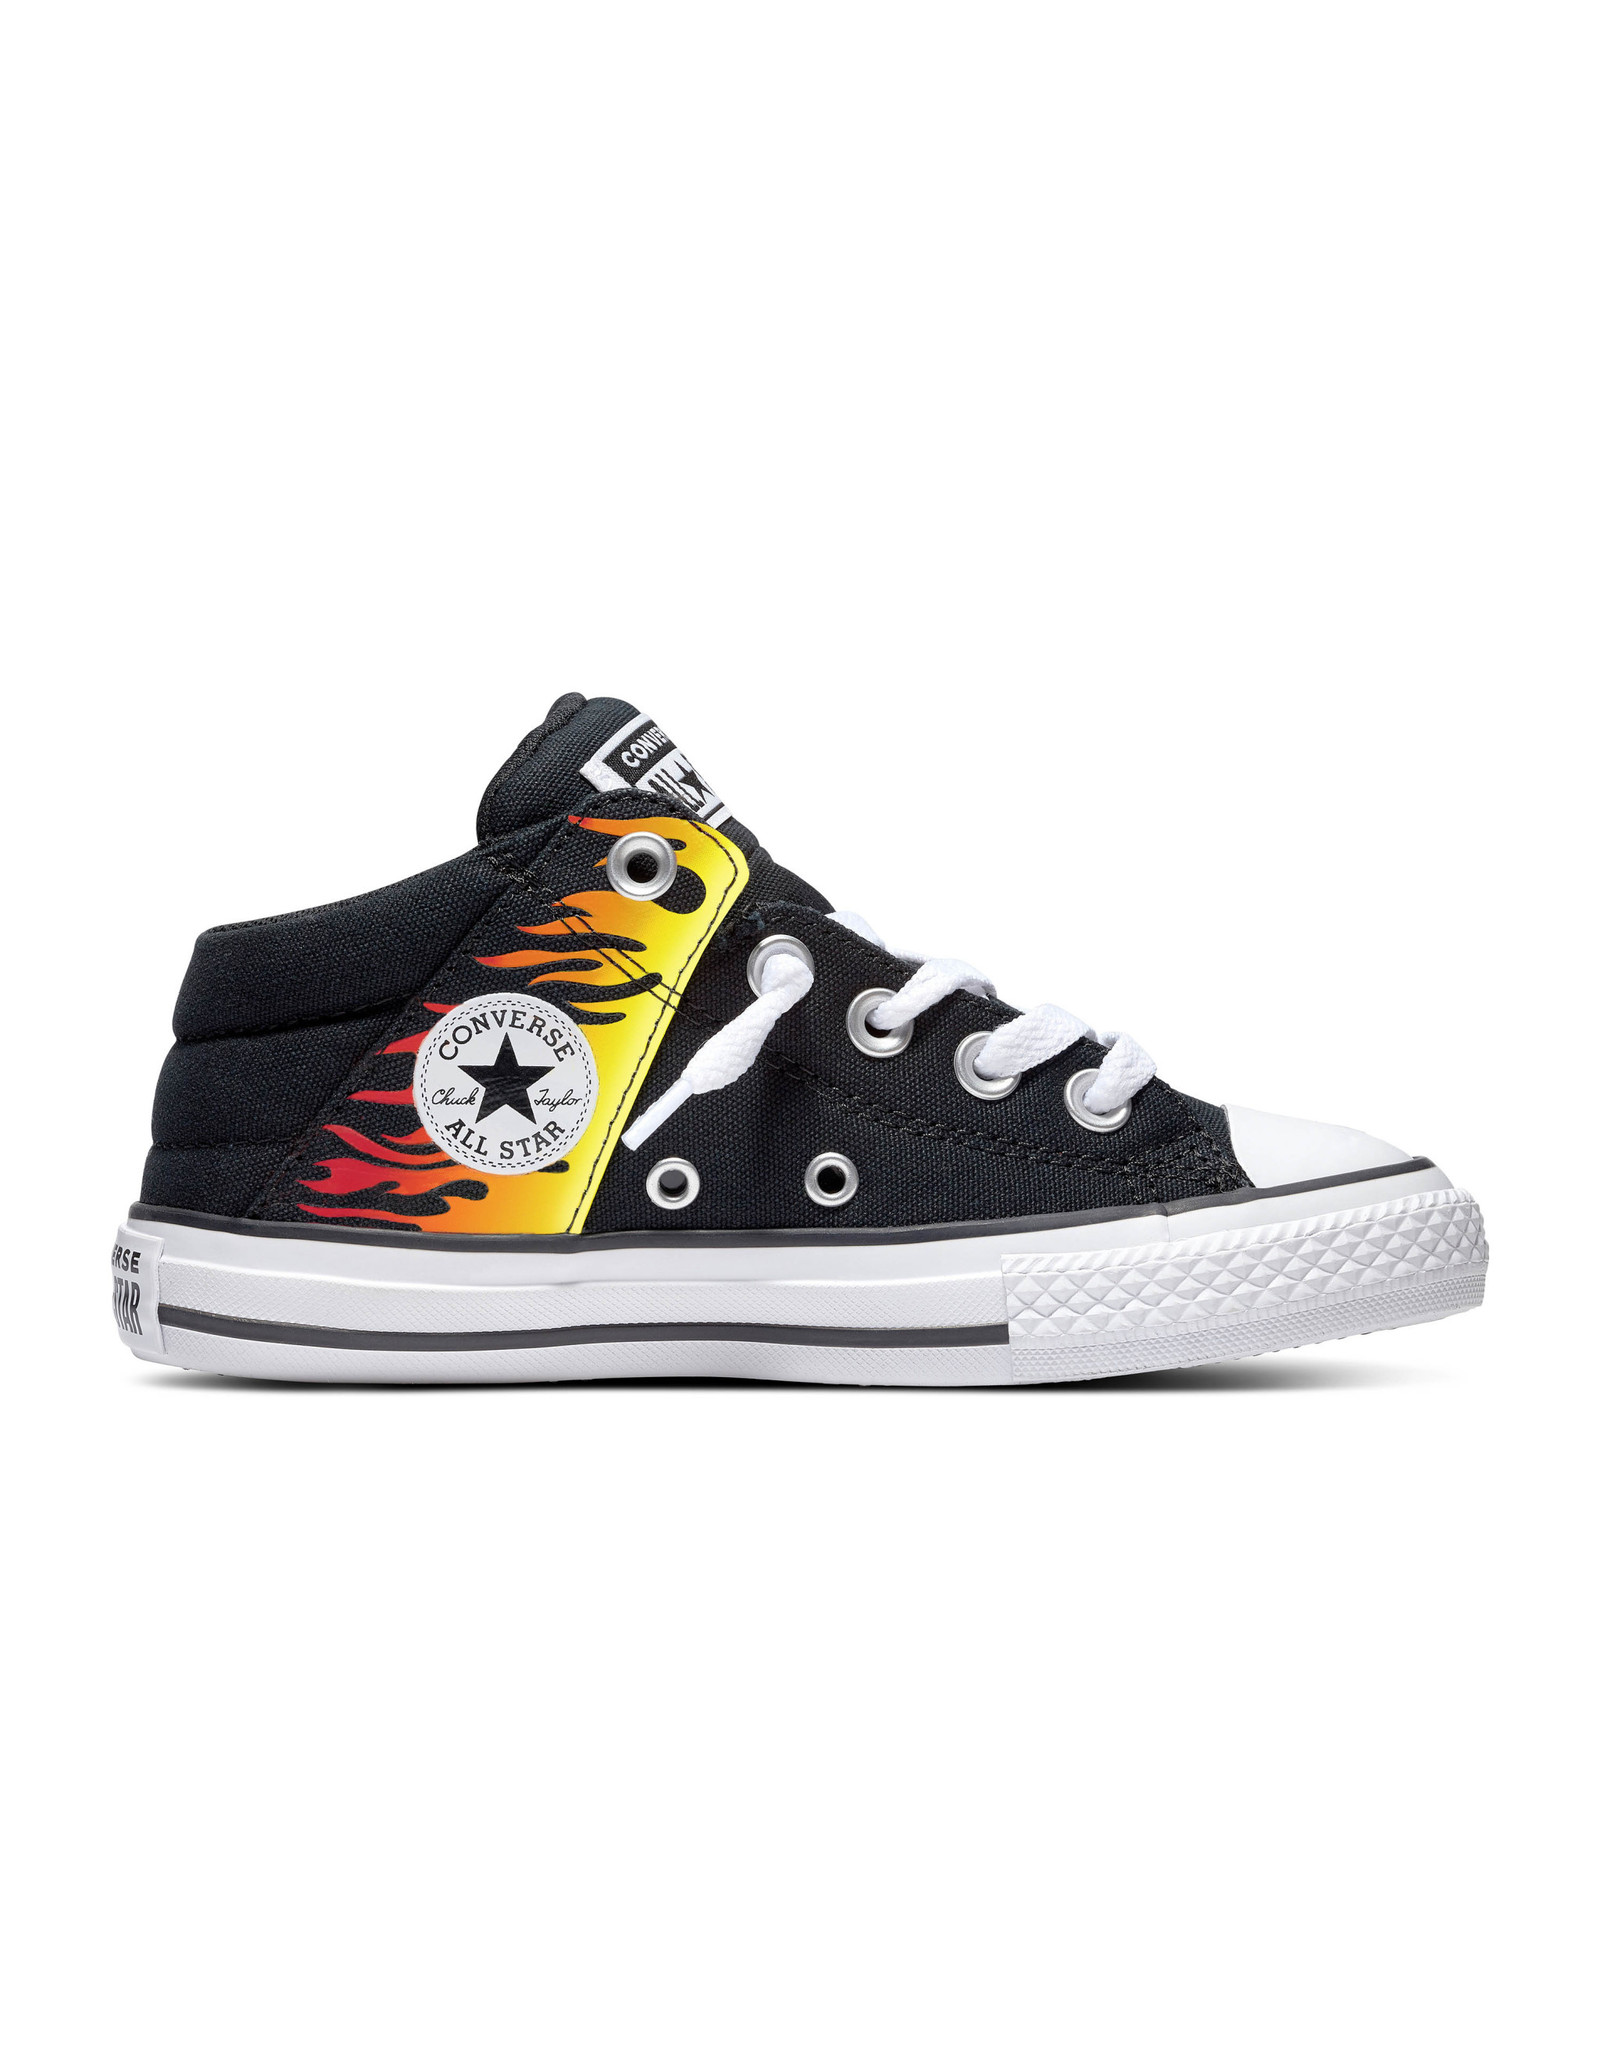 CONVERSE CHUCK TAYLOR ALL STAR AXEL MID BLACK/FRESH YELLOW CZMFLA-666299C